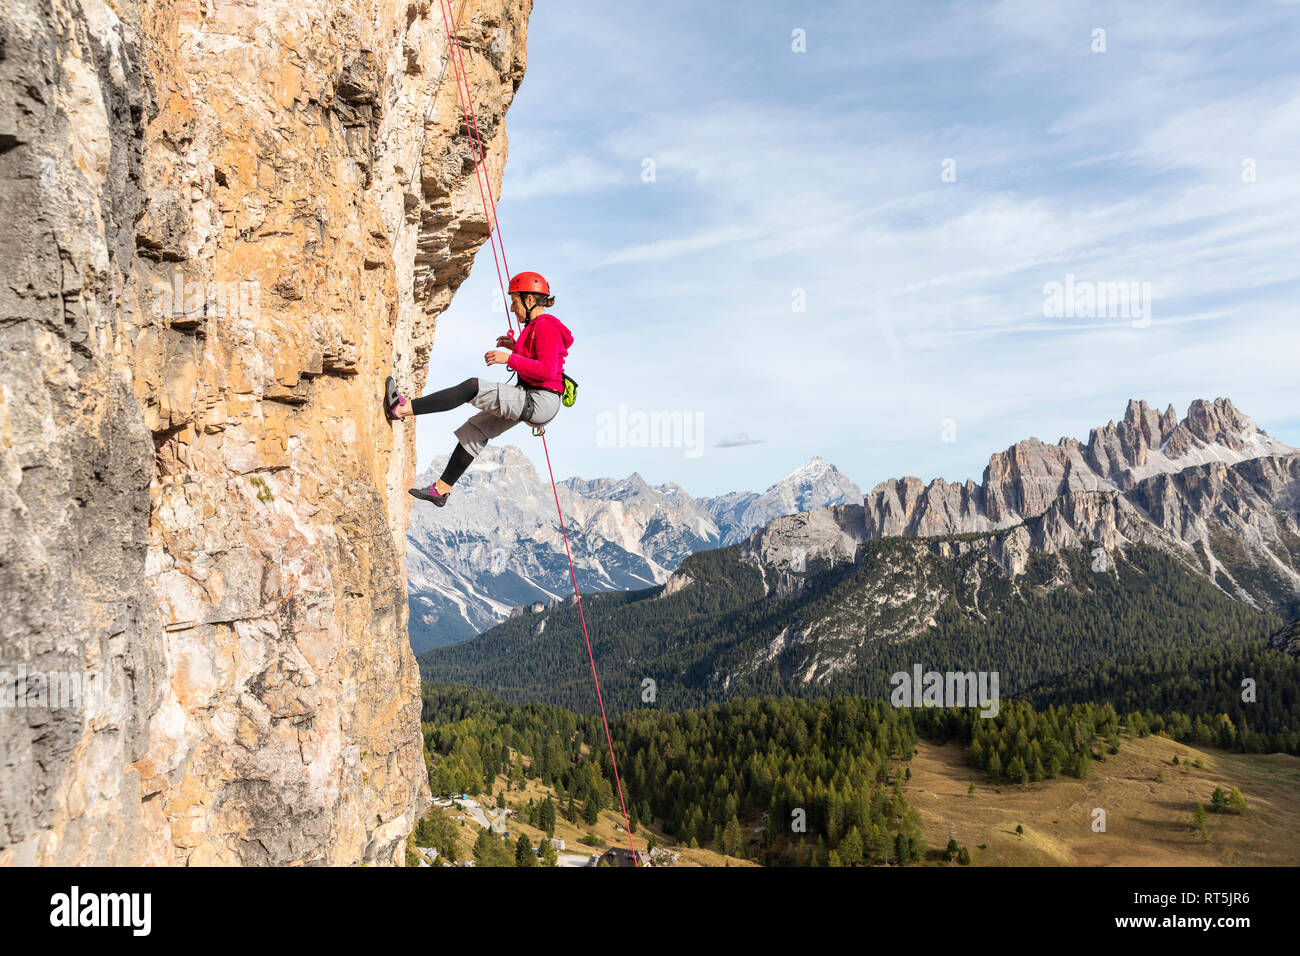 Italy, Cortina d'Ampezzo, woman abseiling in the Dolomites mountains Stock Photo